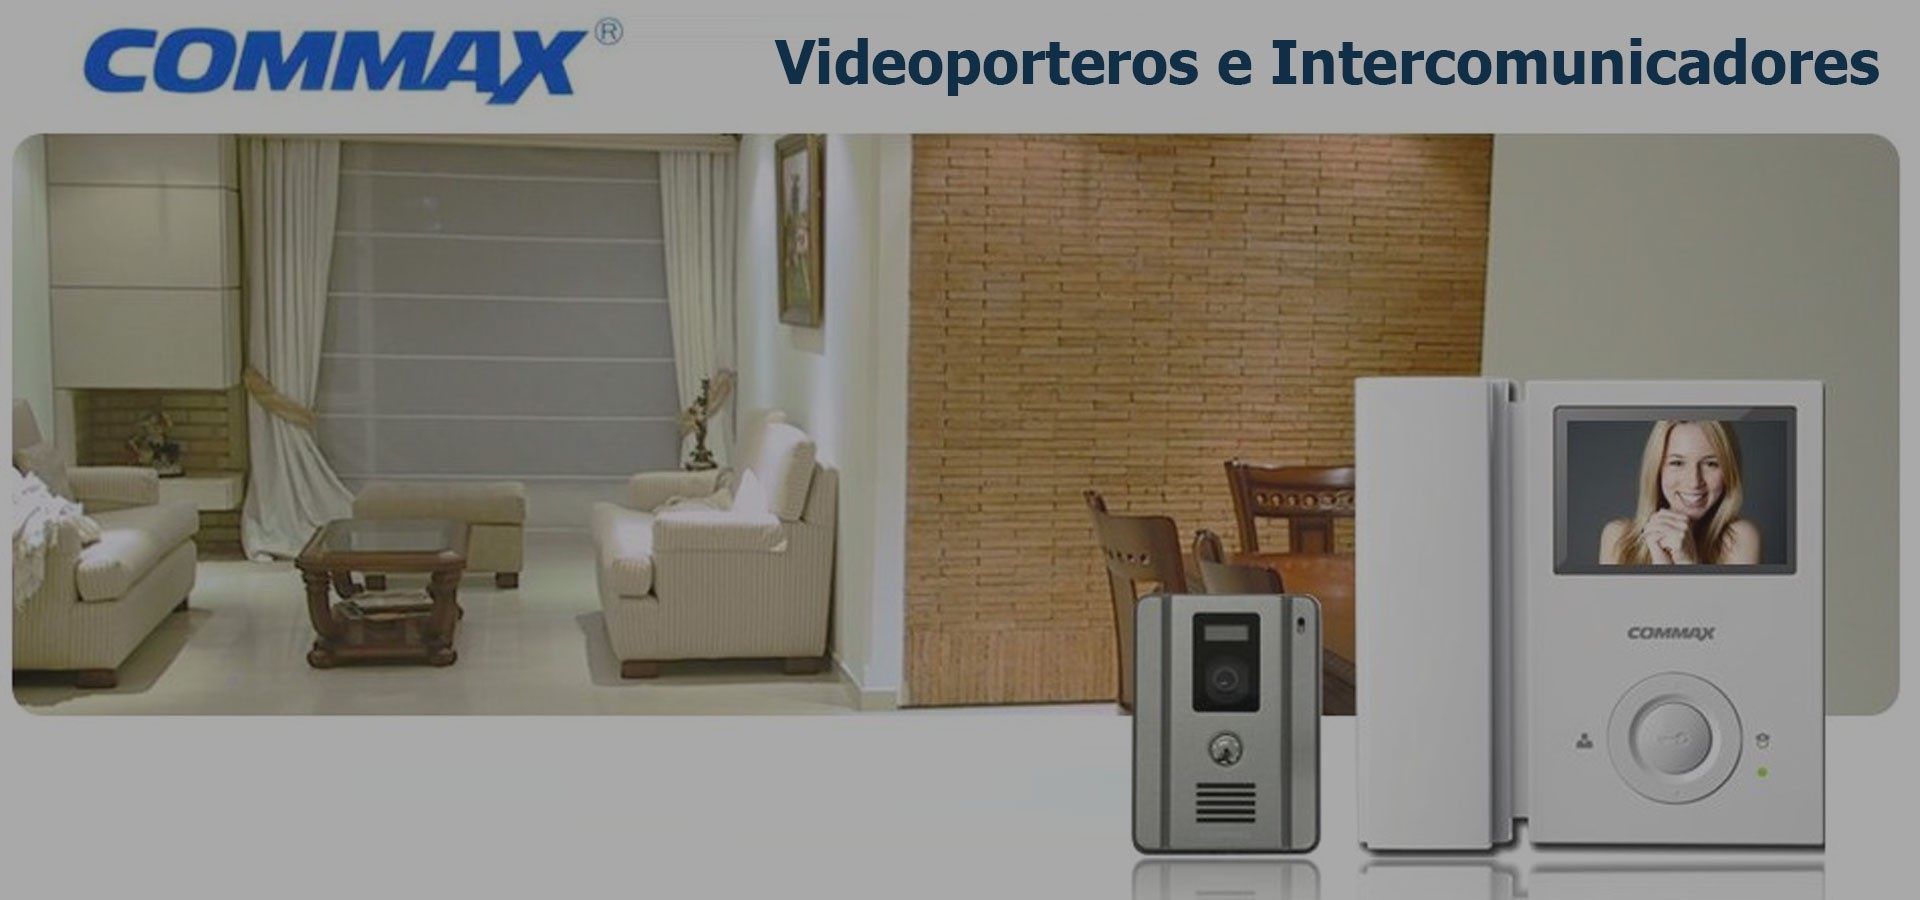 Videoporteros e Intercomunicadores COMMAX